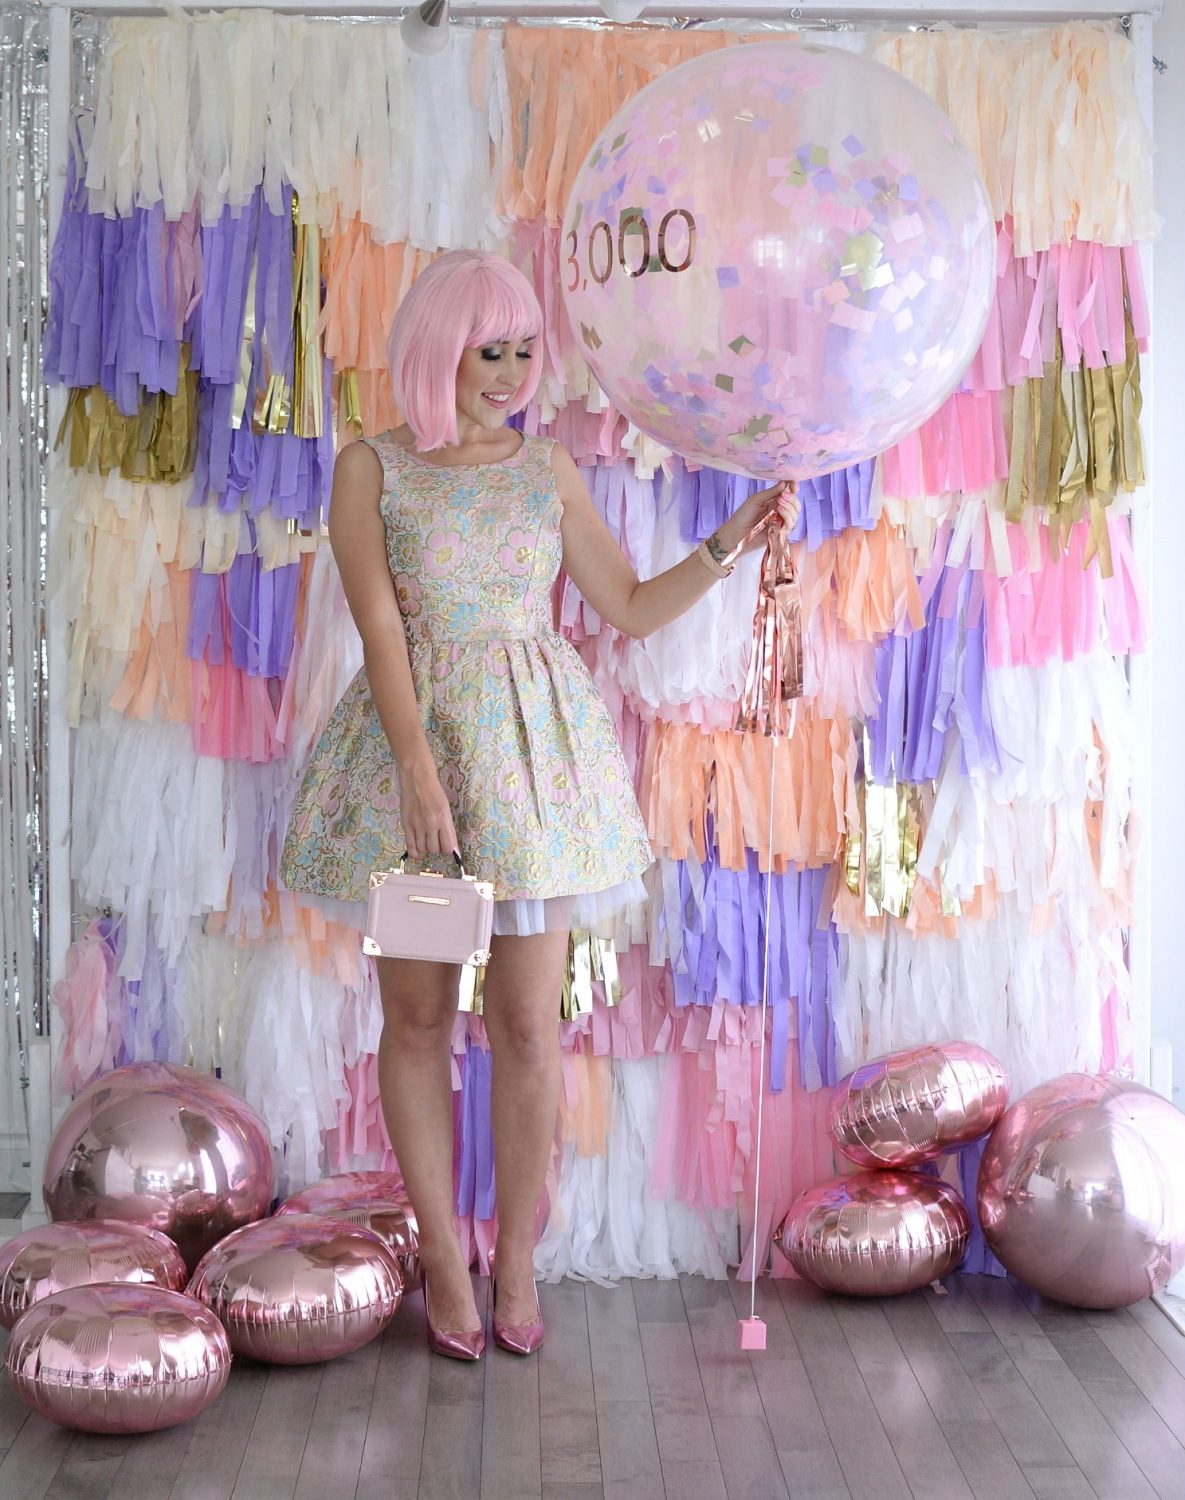 Tassel Wall, Tassel Garland, 3000th blog post, the pink millennial